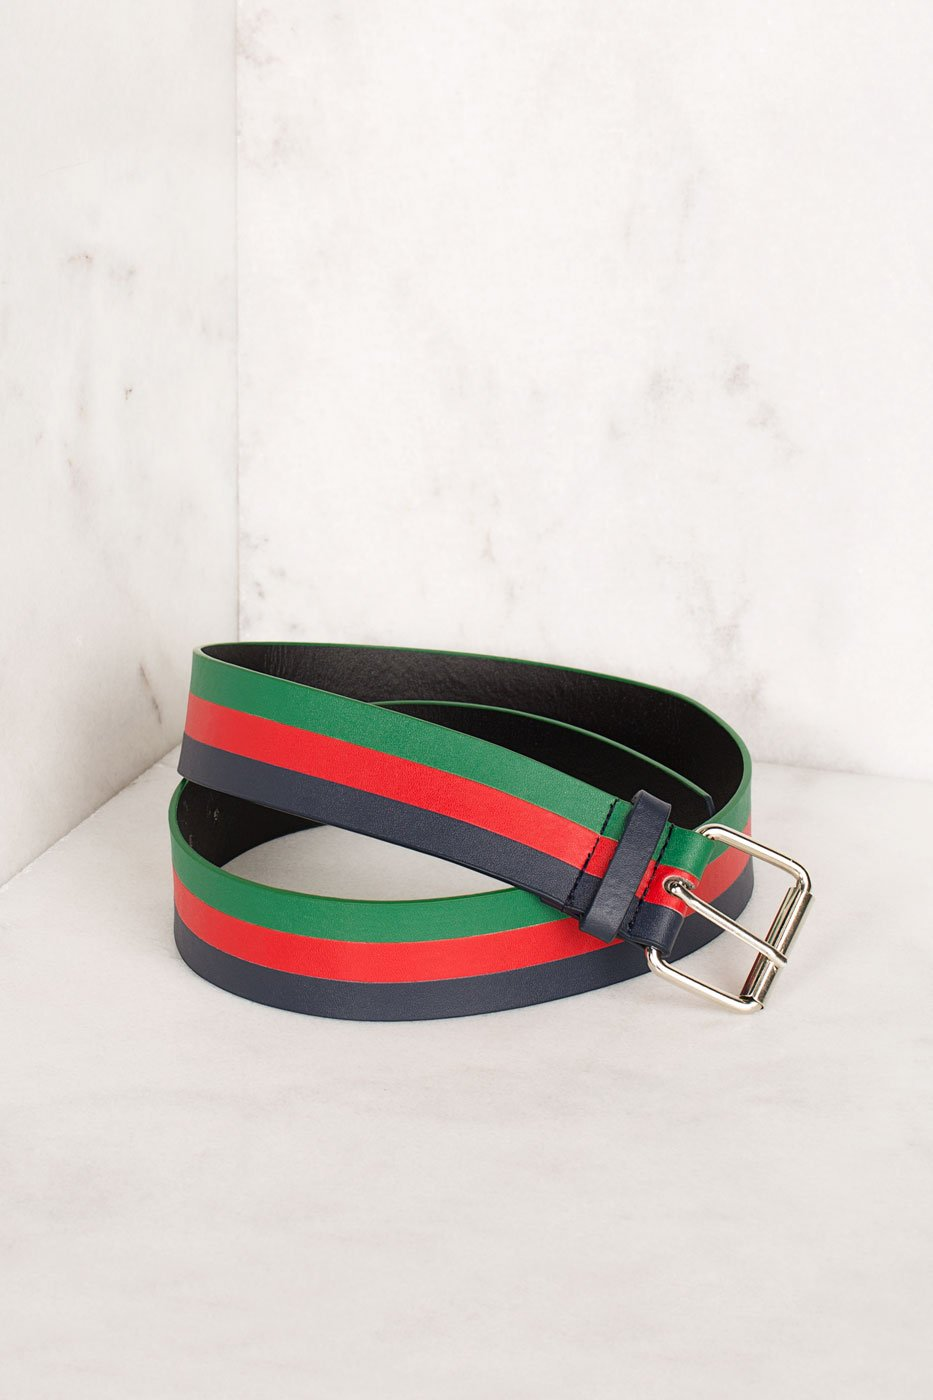 Accessories - Explorer's Dream Belt